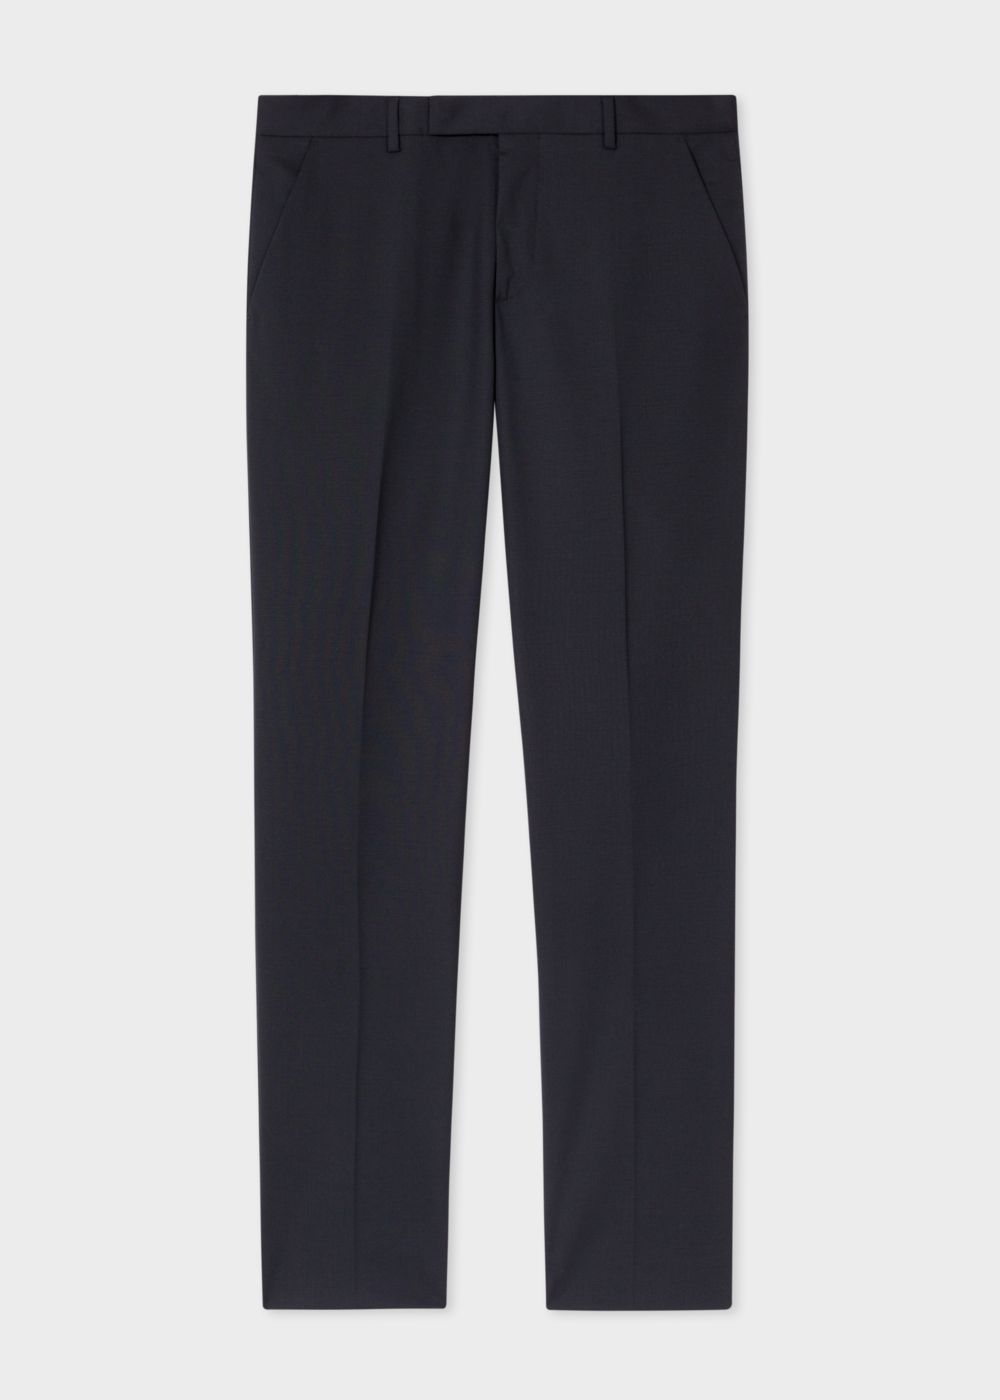 Paul Smith A Suit To Travel In - Men's Slim-Fit Black Stretch-Wool Trousers